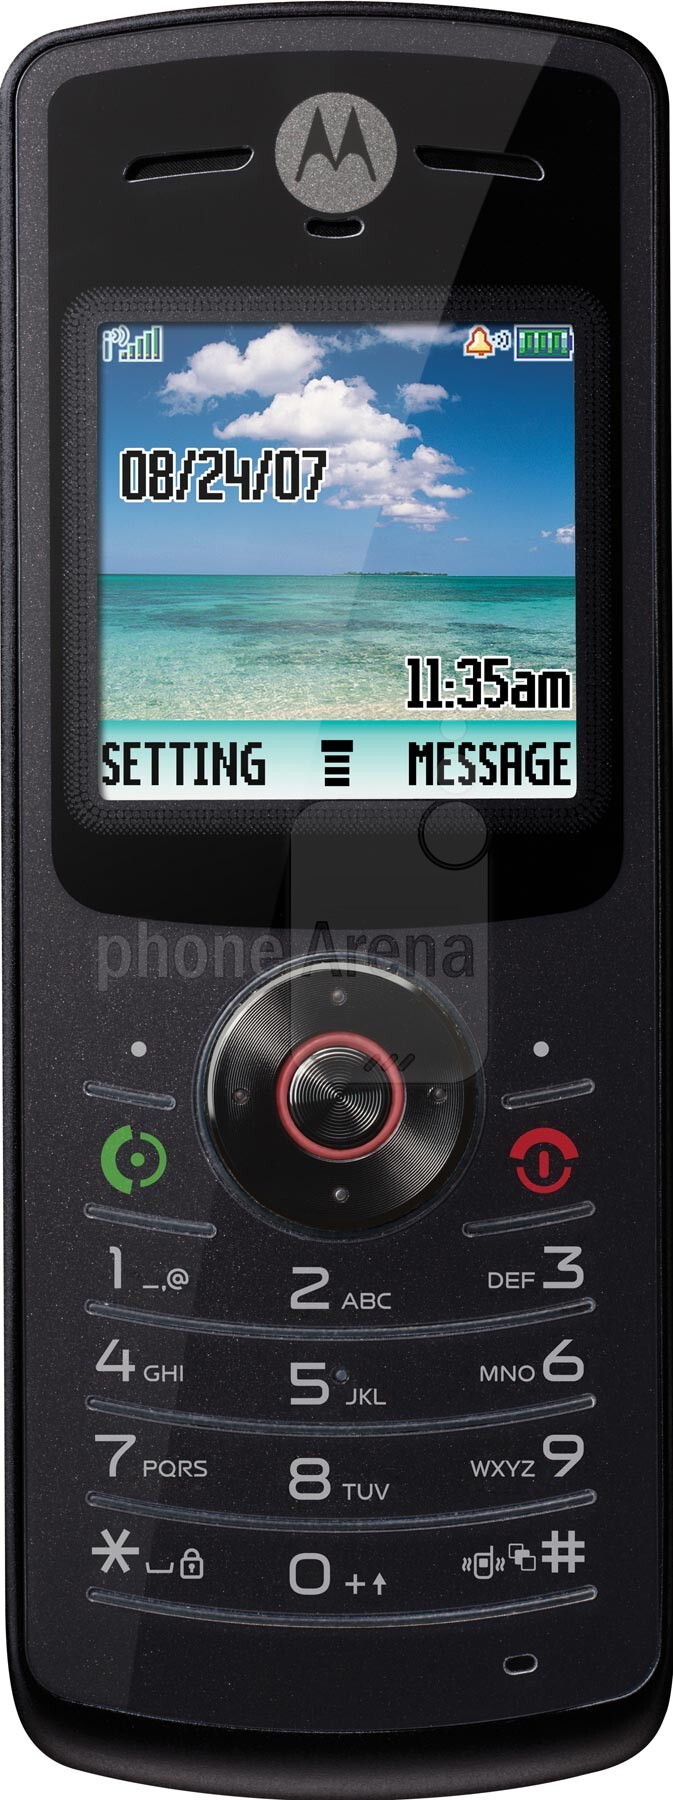 List Of Synonyms And Antonyms The Word Motorola W175 W370 W375 Service Manual W175g Speaker Dualband Gsm Message Tracfone